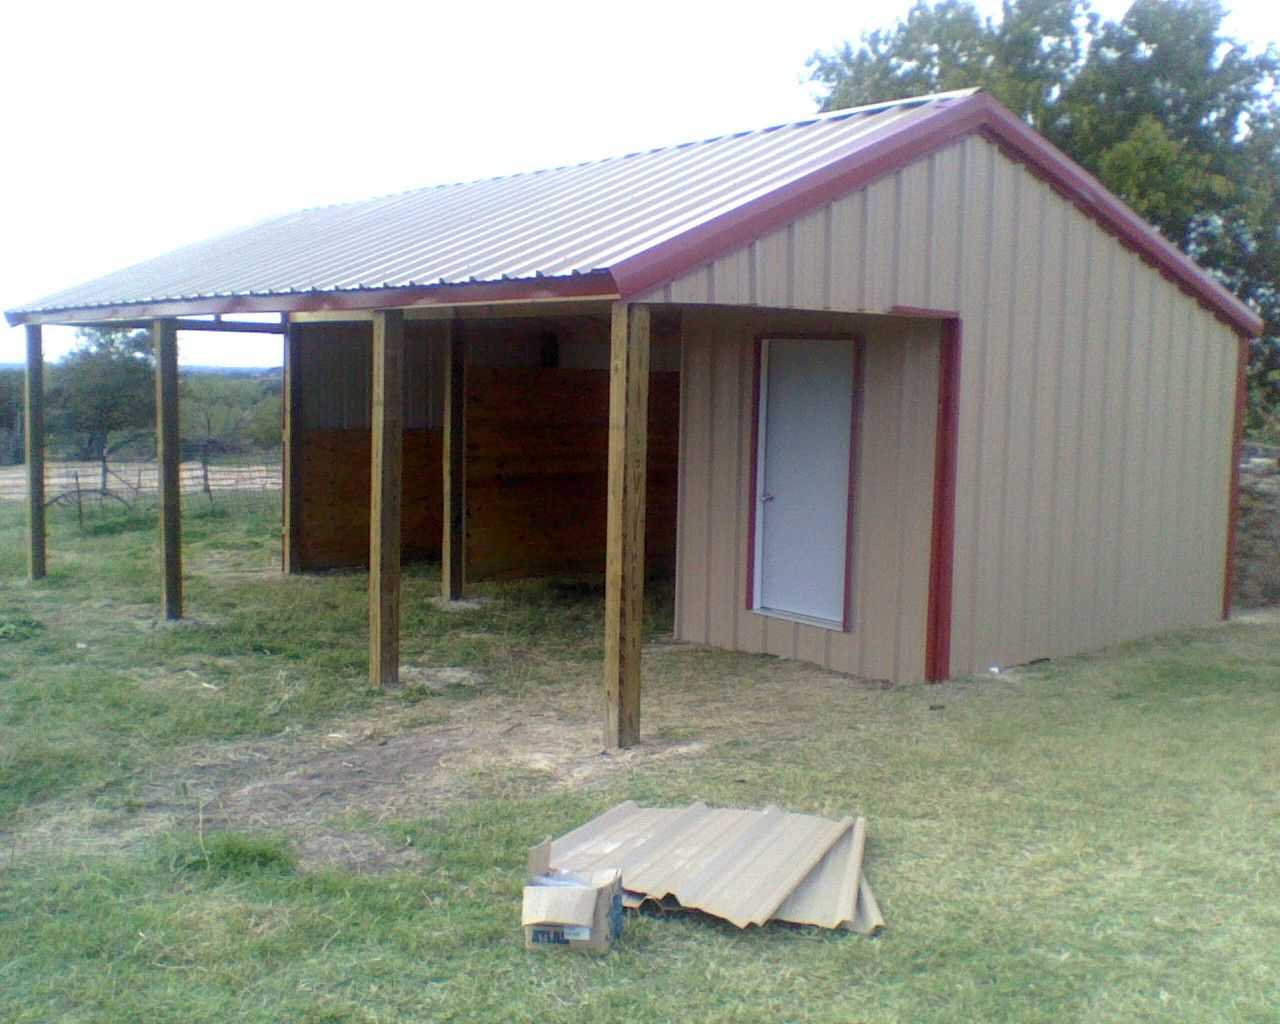 Small 2 stall horse barn small barns horse related for 4 stall barn designs